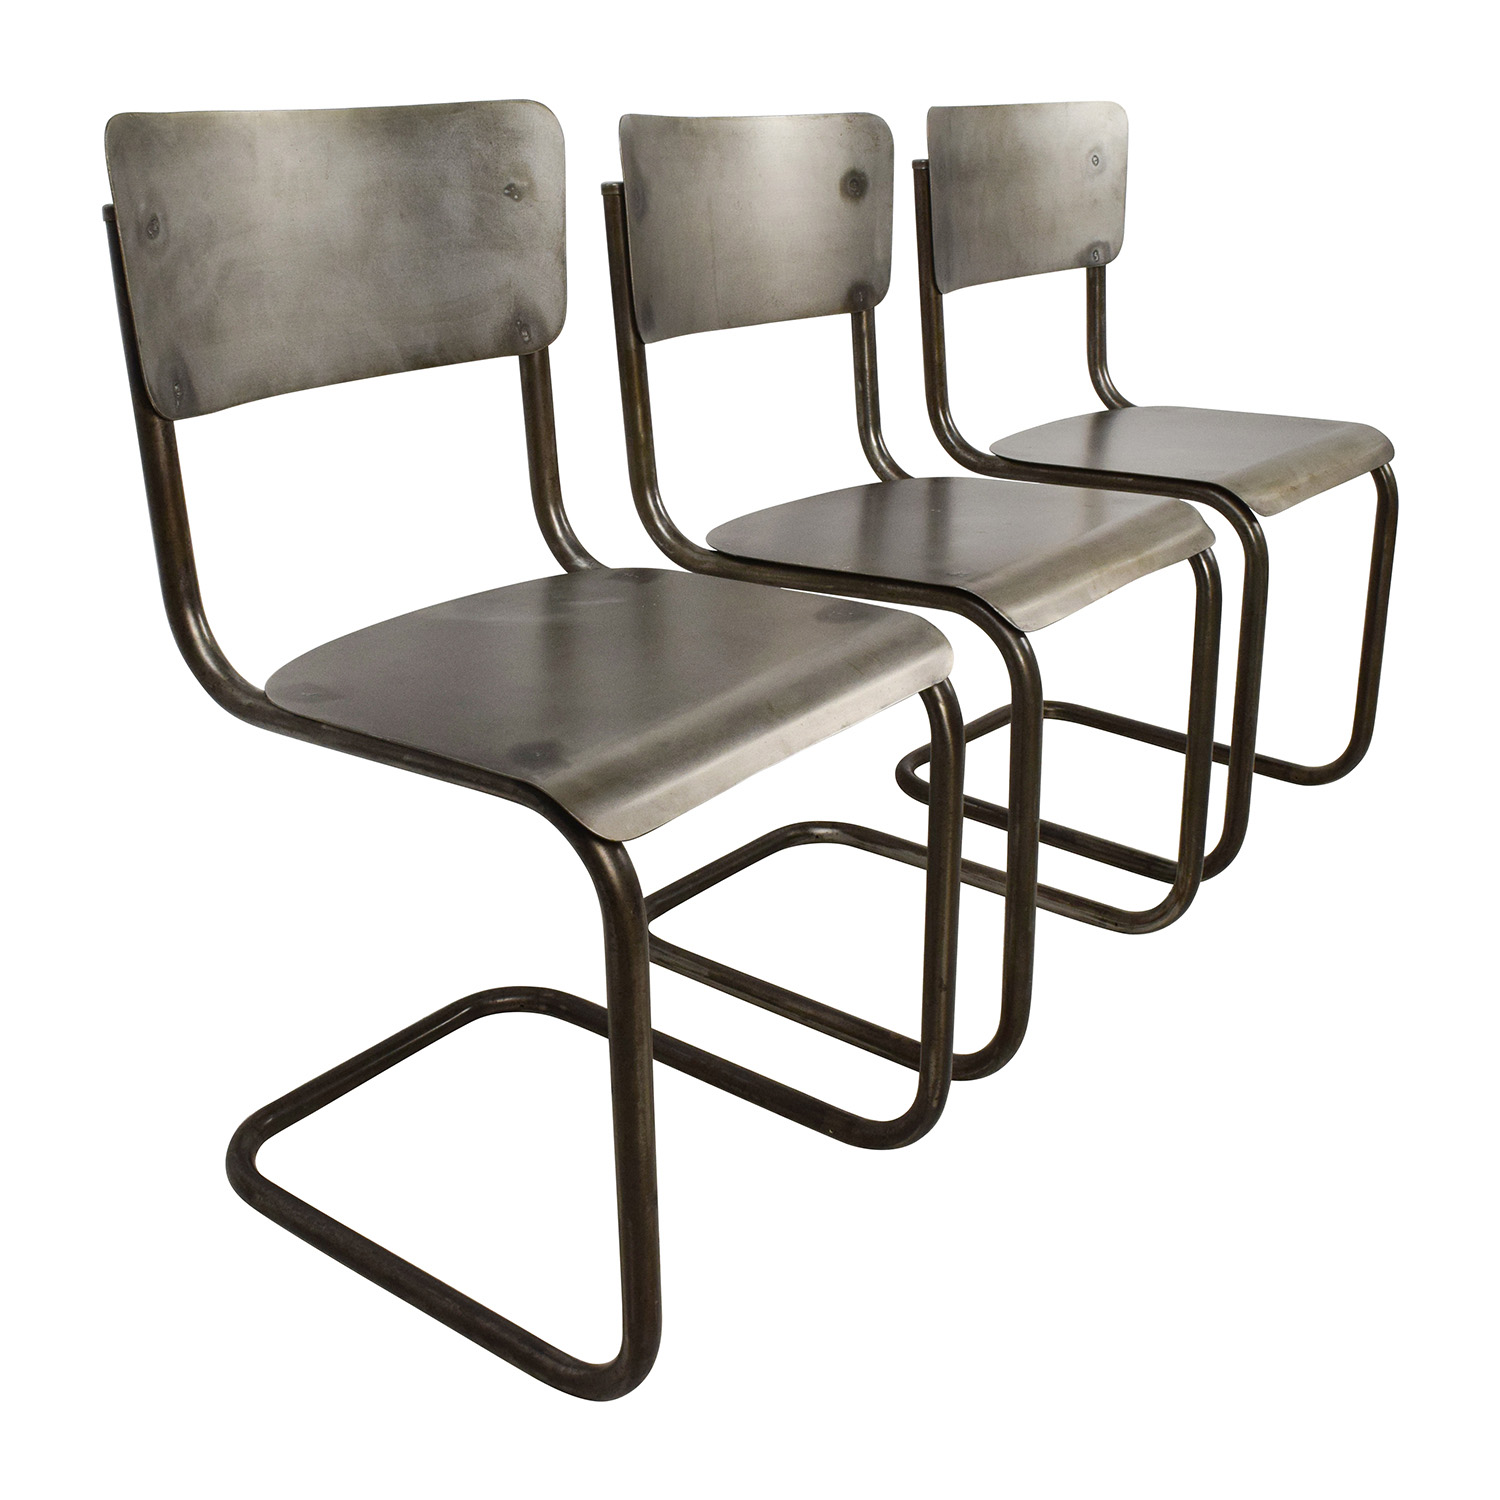 metal chair onlineshop products asplund greenkhaki cushion eija